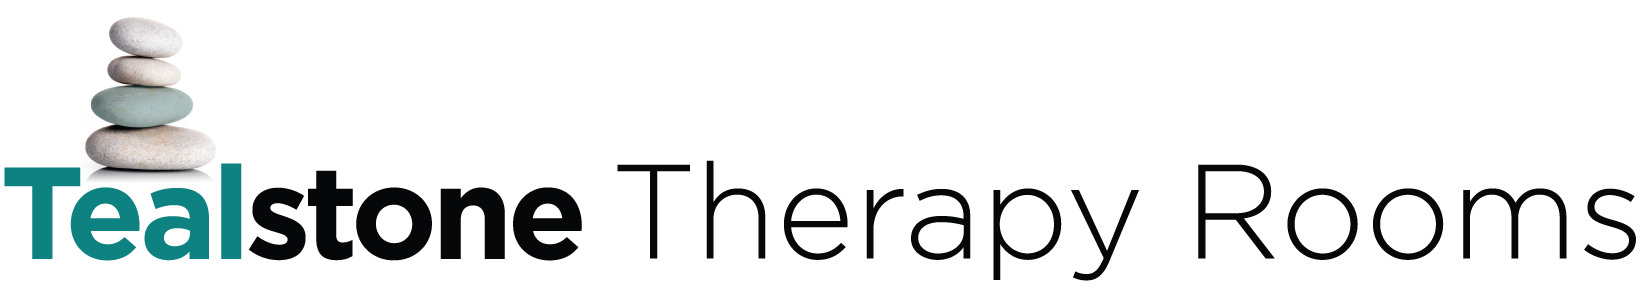 Tealstone Therapy Rooms